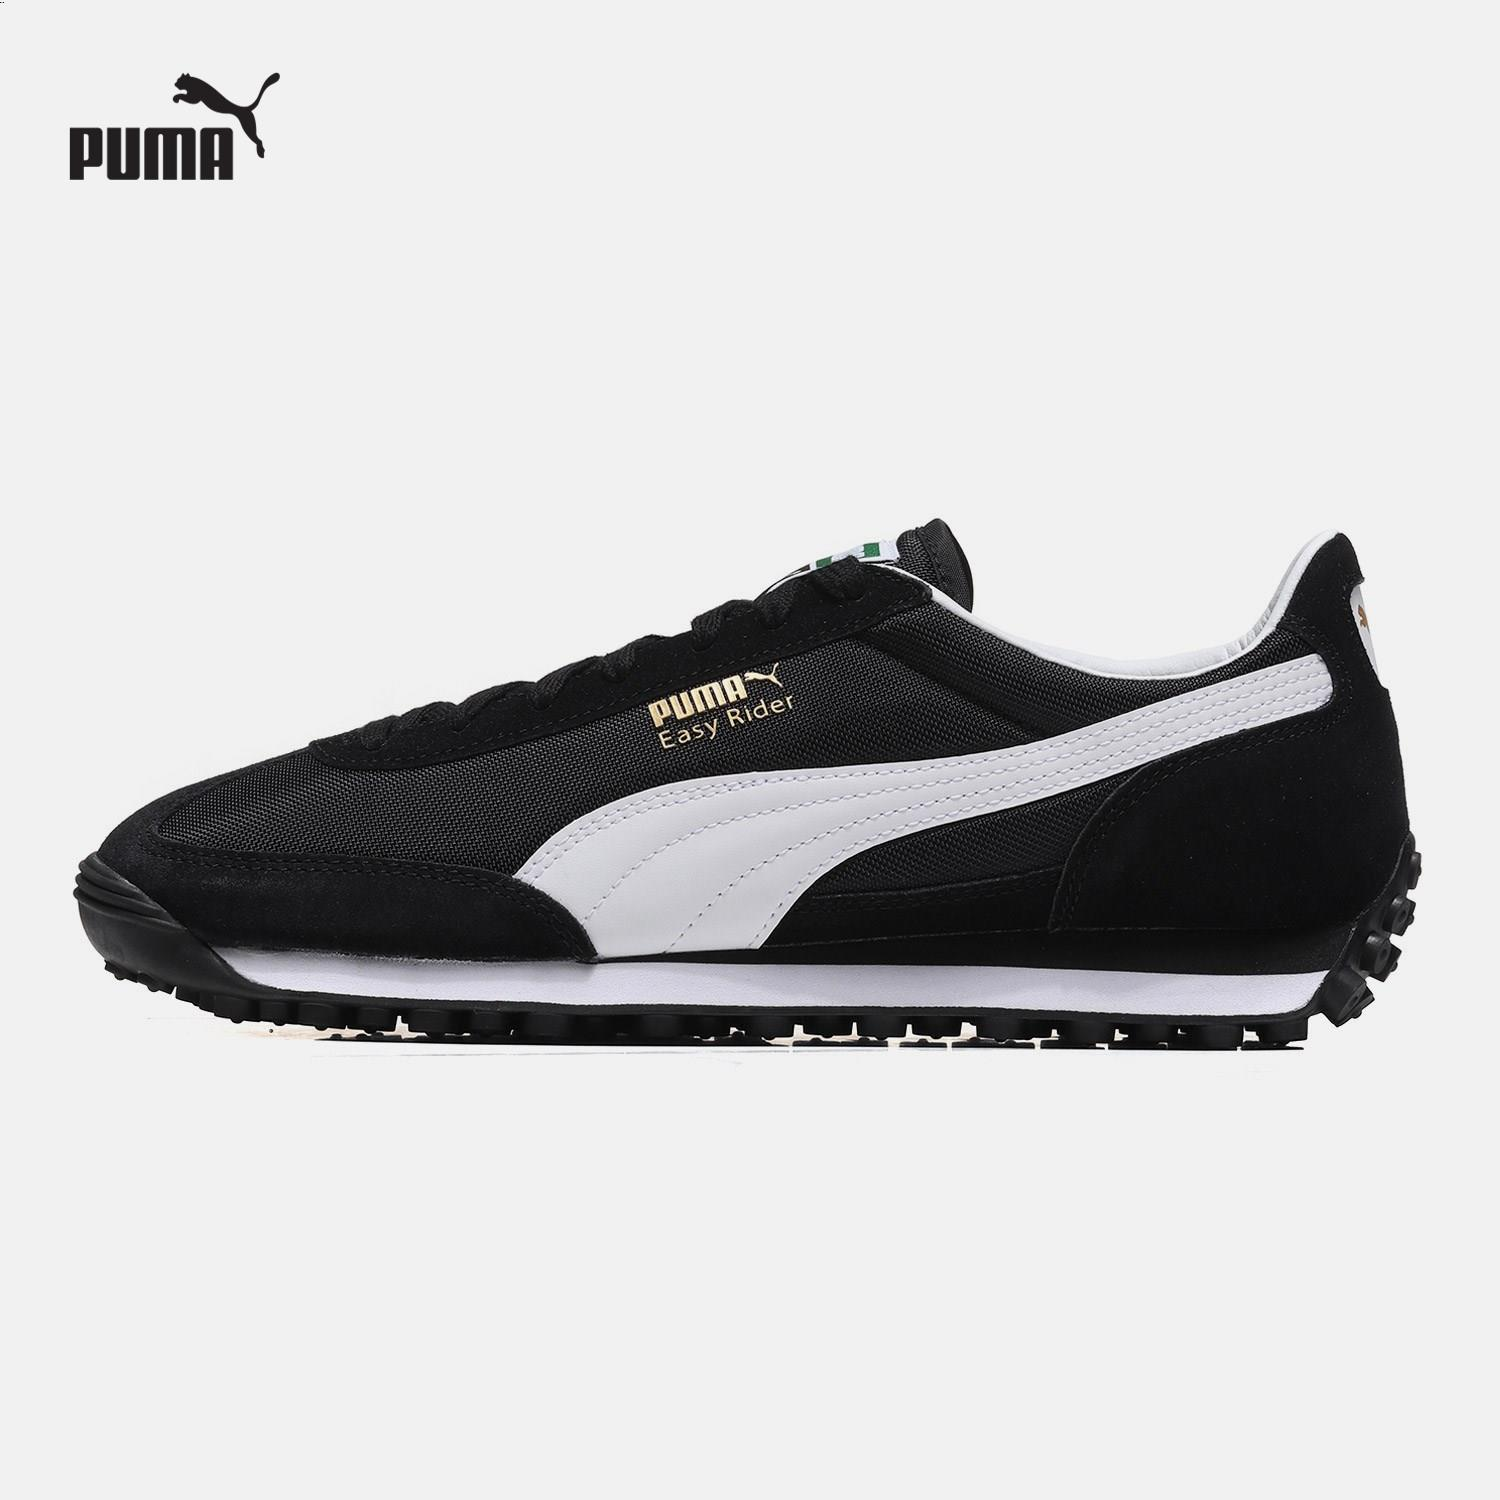 Puma Puma men and women Easy Rider casual shoes 2018 New summer non-slip running  shoes 36312907 943a72e21